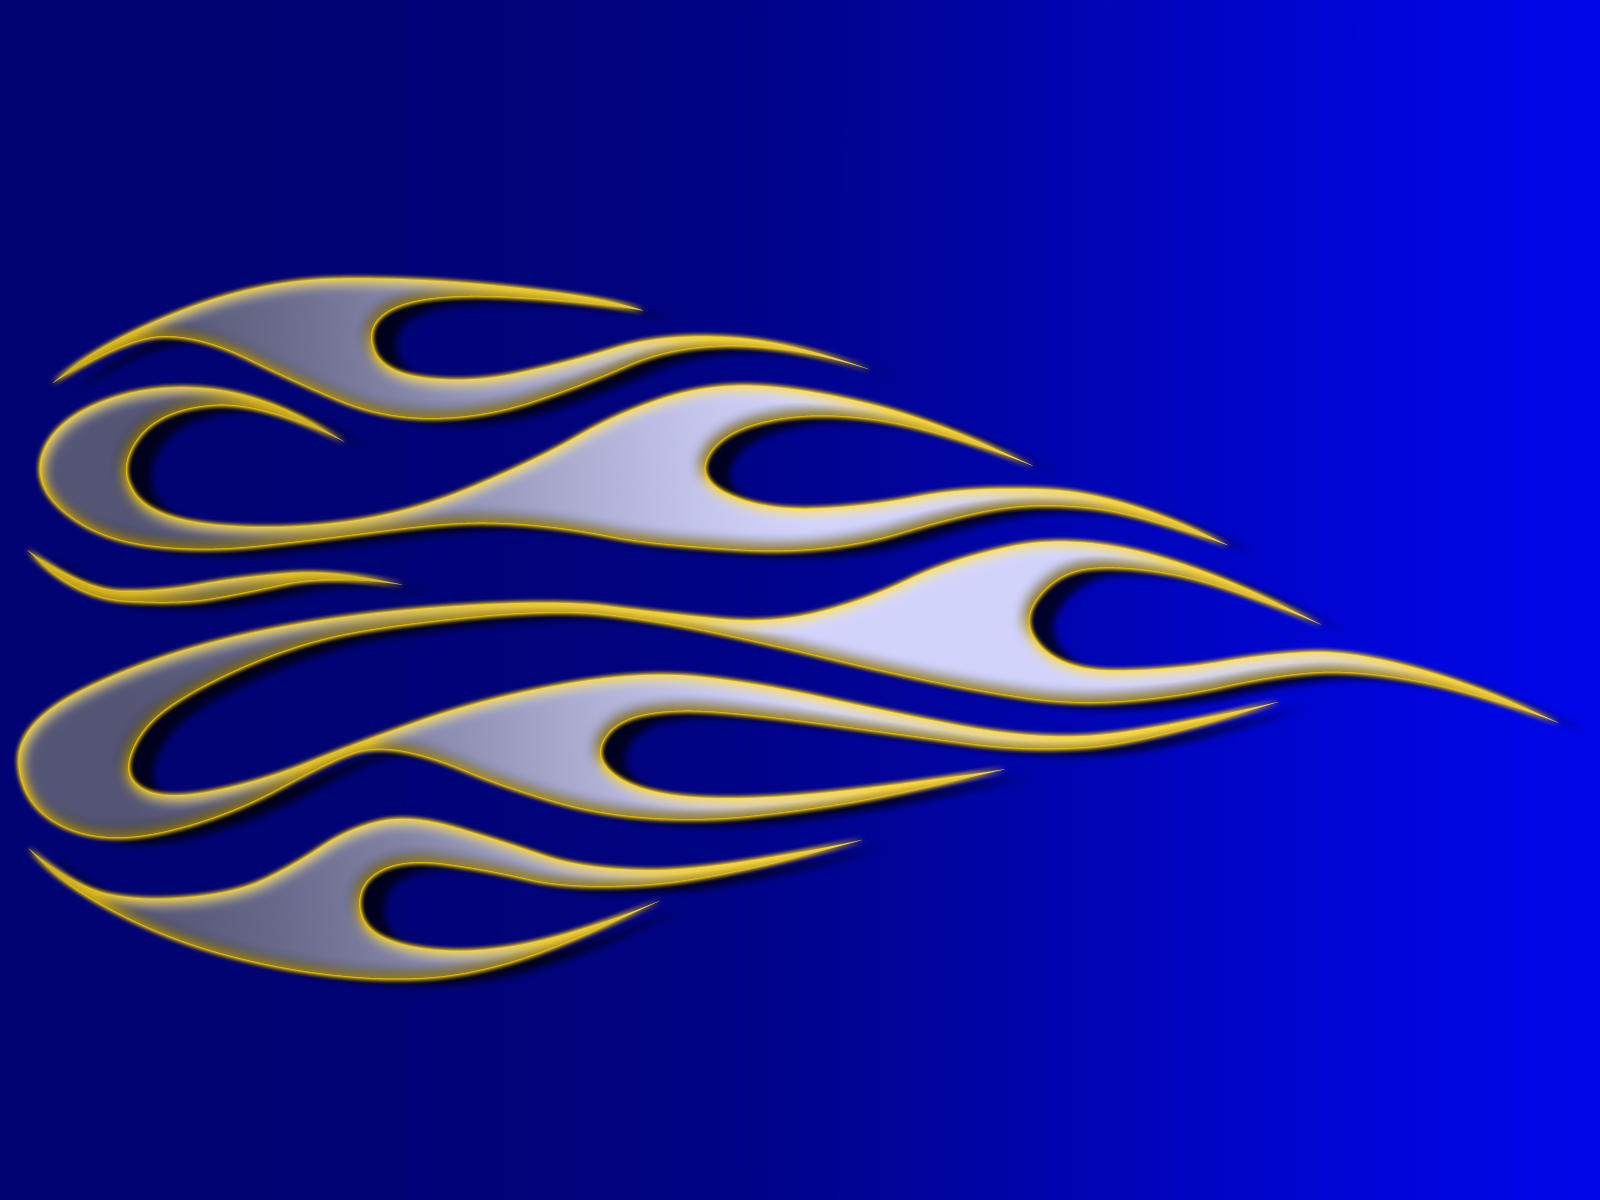 flames - silver on blue by jbensch